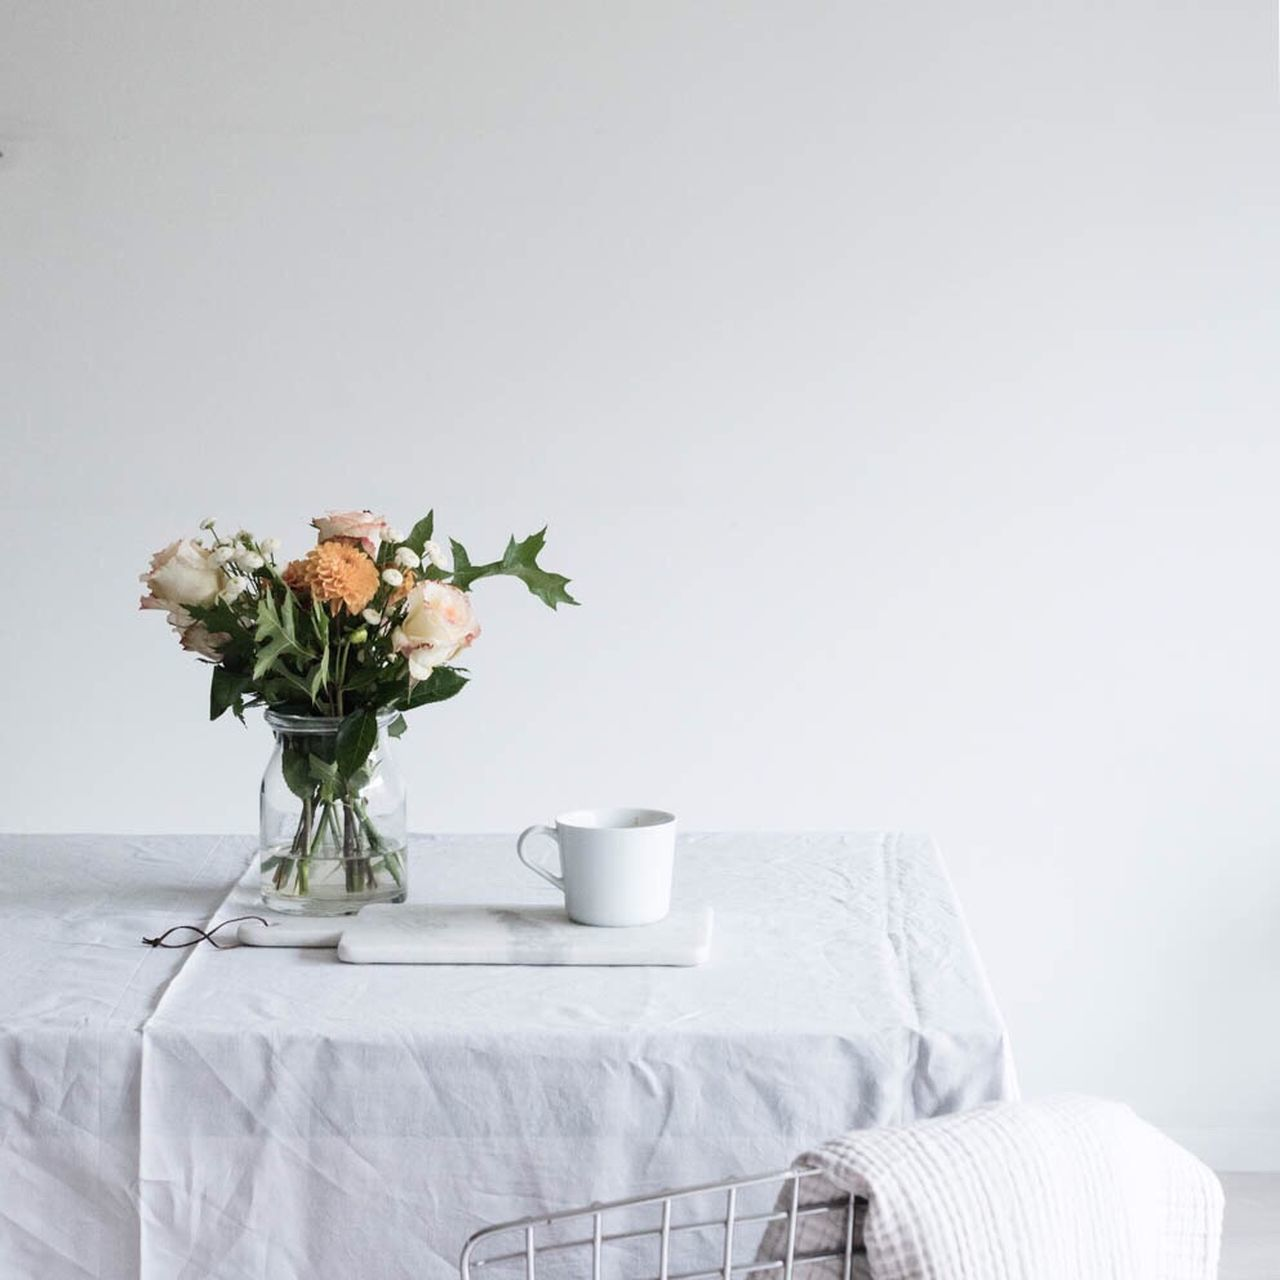 Vase Indoors  Table Flower Flower Arrangement Still Life Simplicity Table Decor Dining Table Linen Table Setting Soft Tones Pastel Power White Color Interior Design Interior Views Interior Interior Style Still Life Photography StillLifePhotography Lifestyle Photography Little Break Moment Of Silence Empty Room